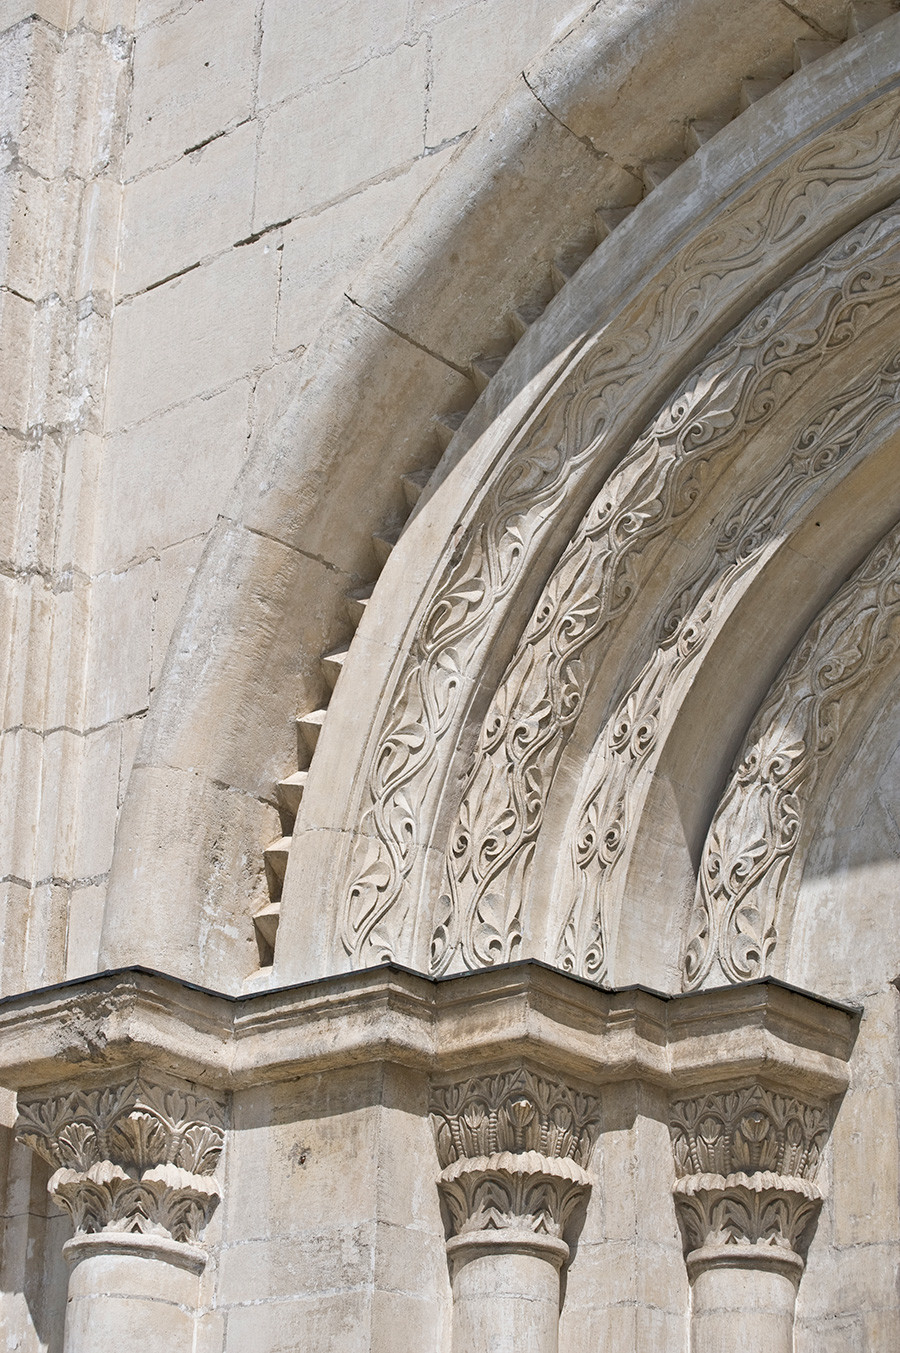 Cathedral of the Dormition, main portal, carved stone arches. July 18, 2009